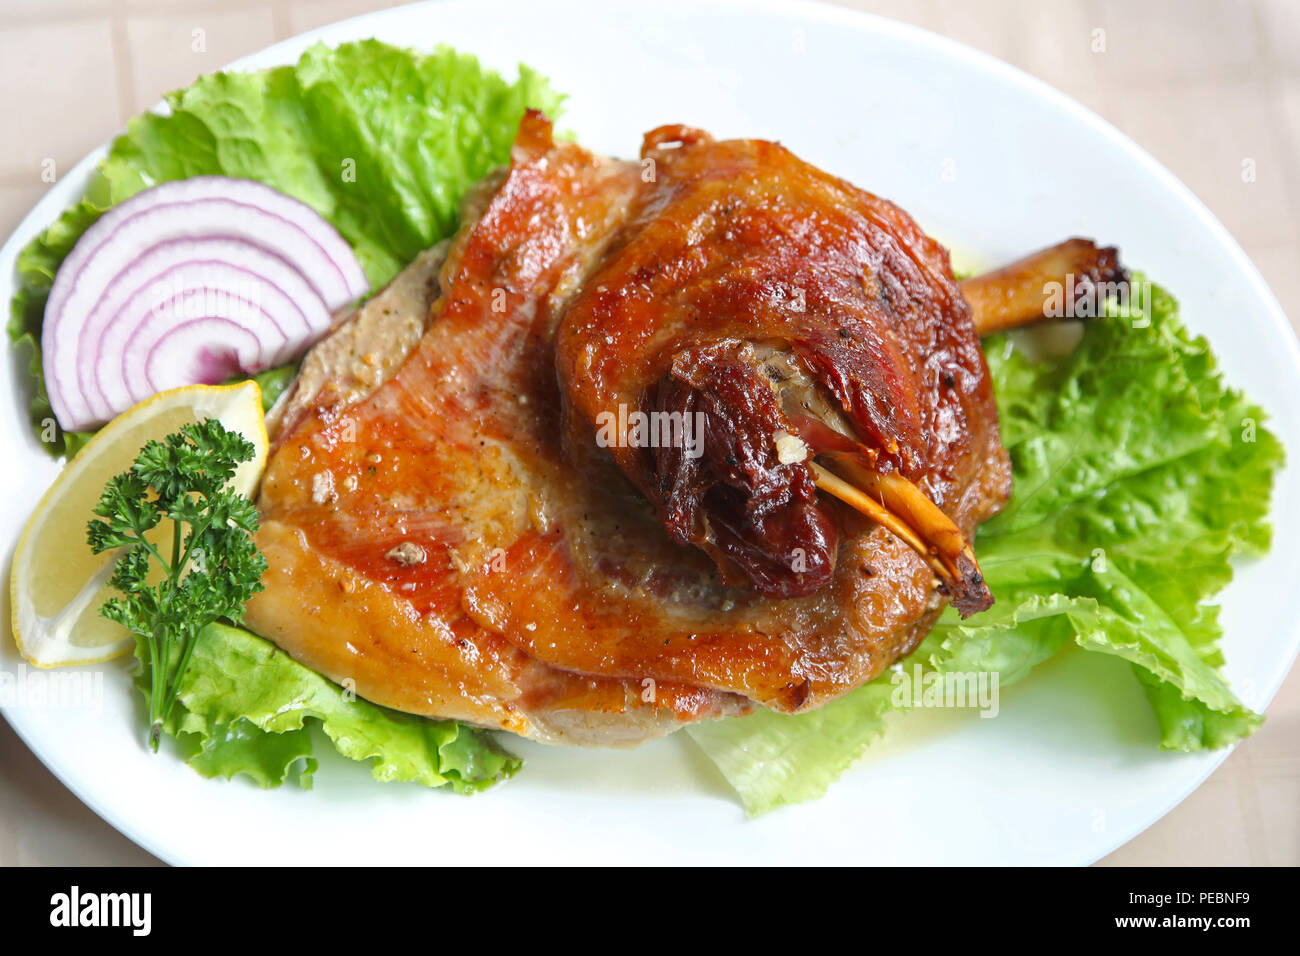 Roasted lamb shank served at dish with salad - Stock Image